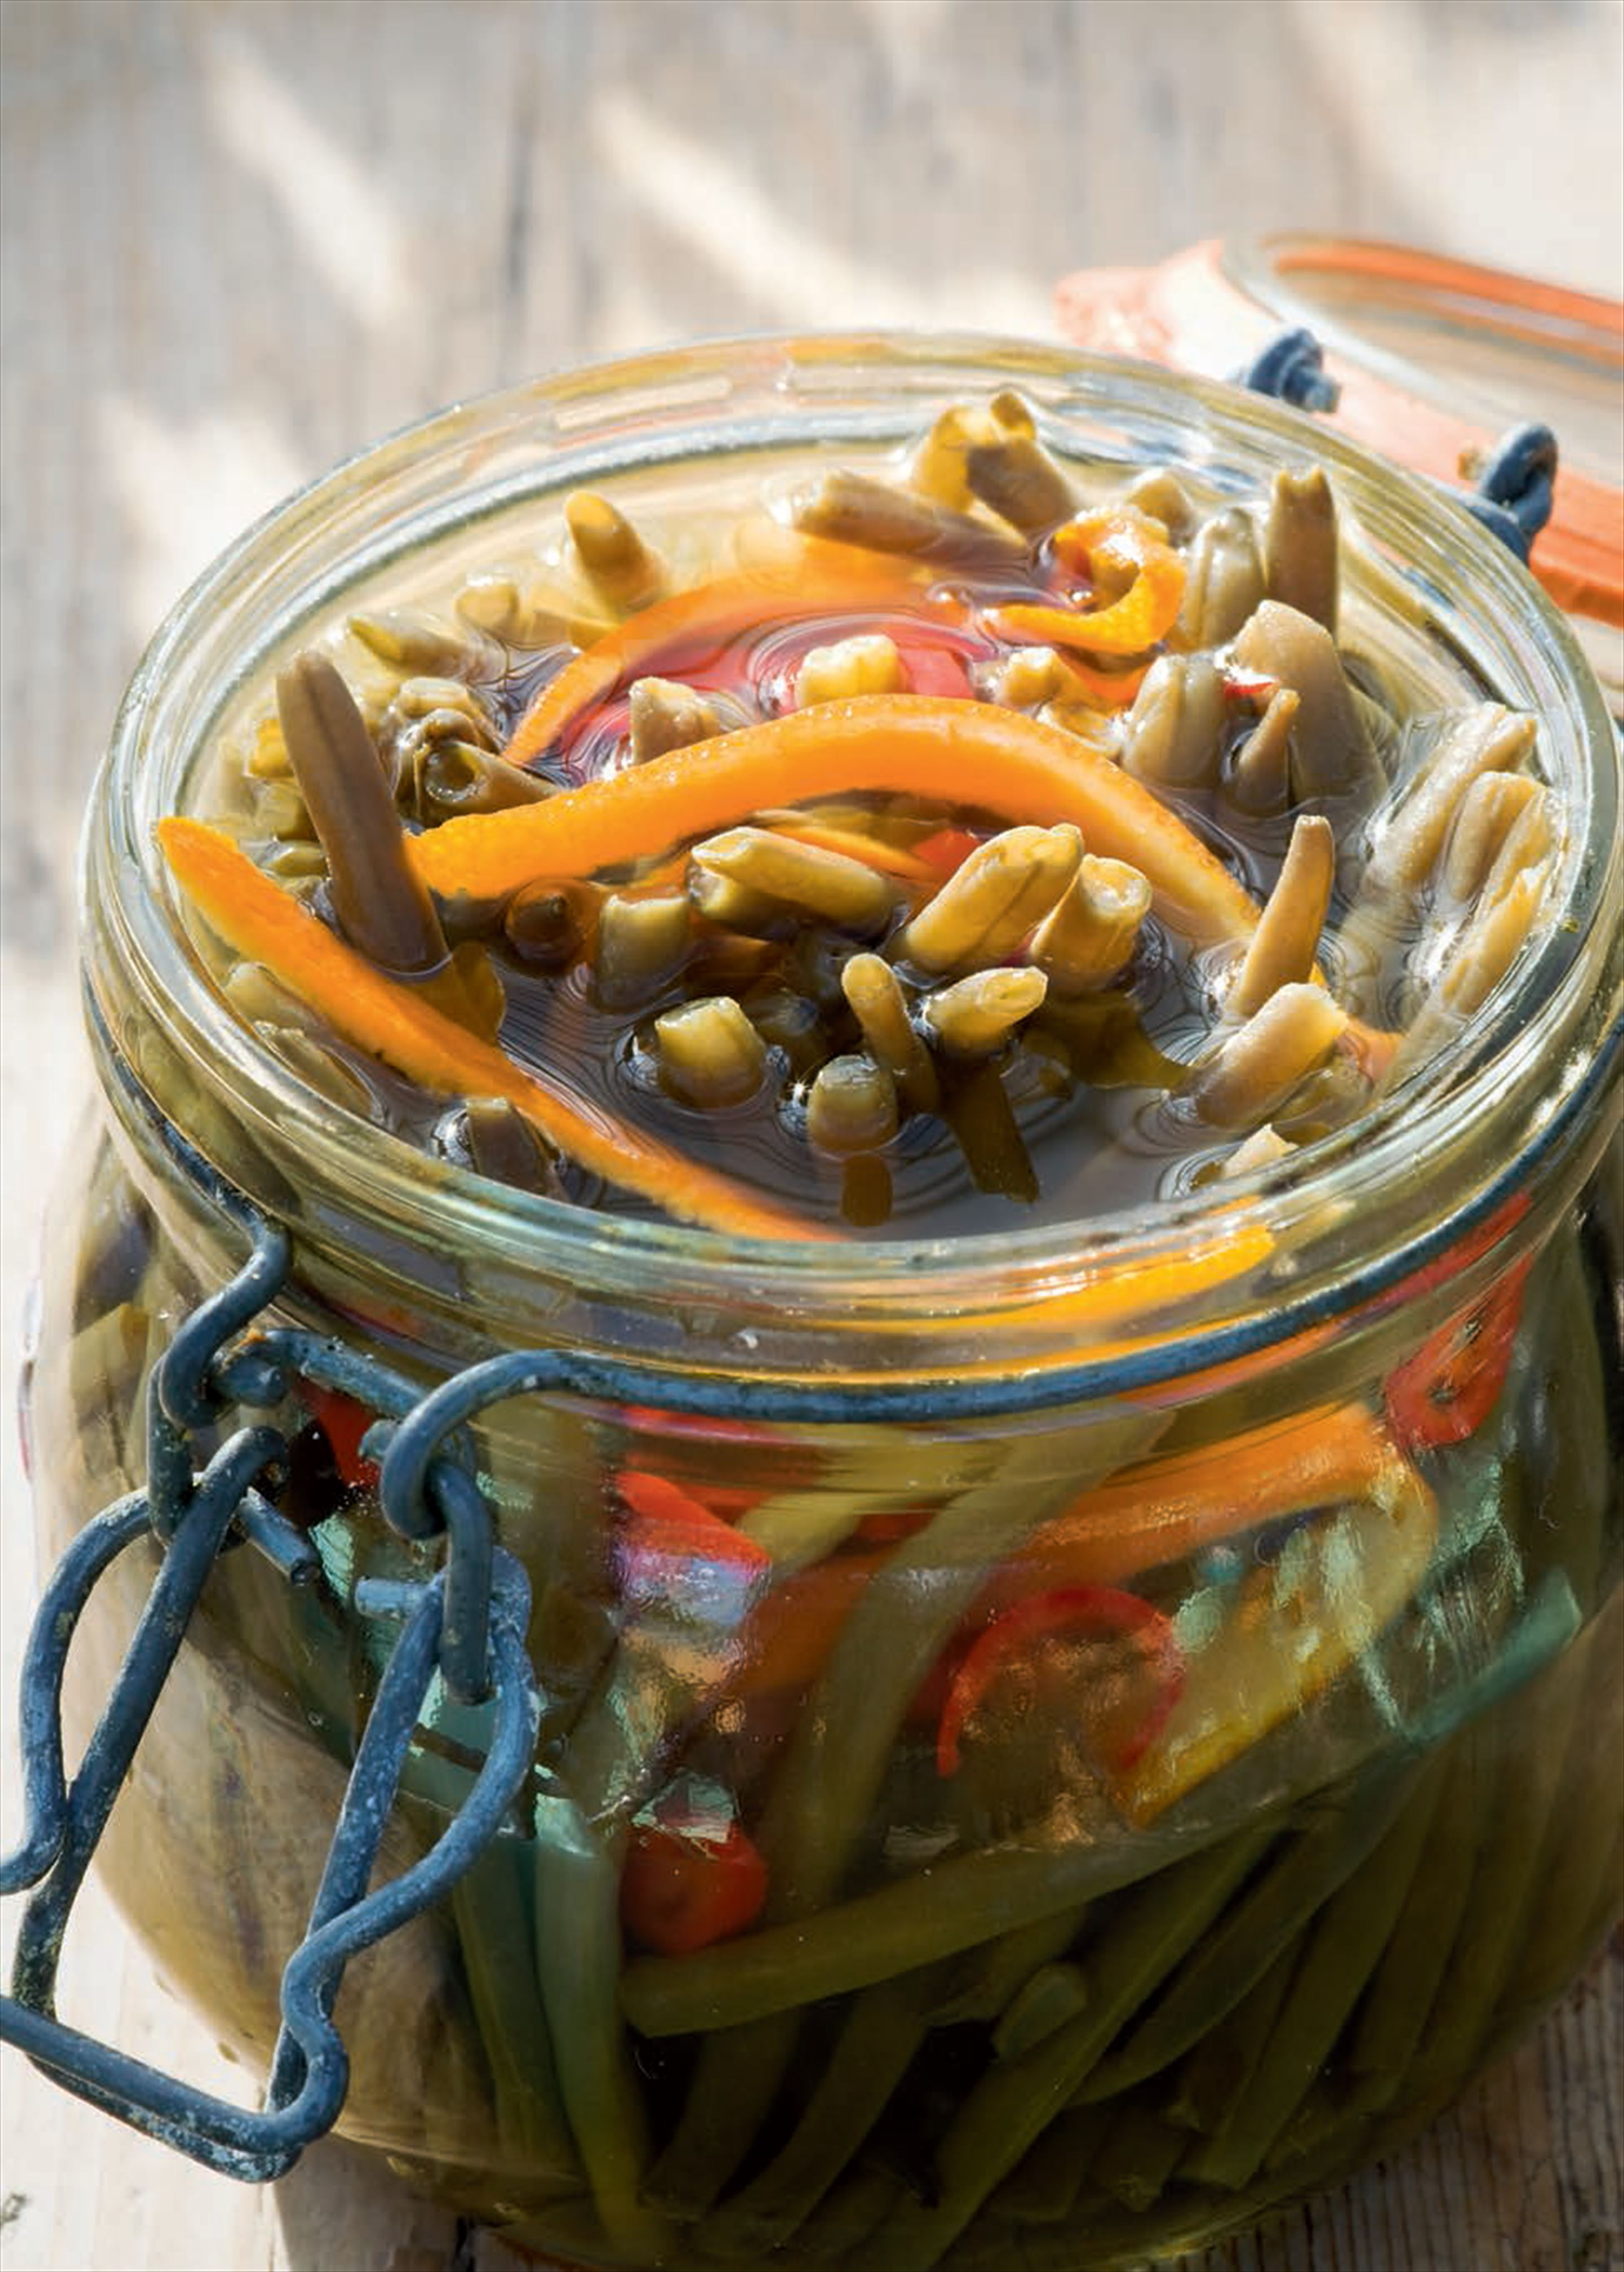 Spiced pickled beans